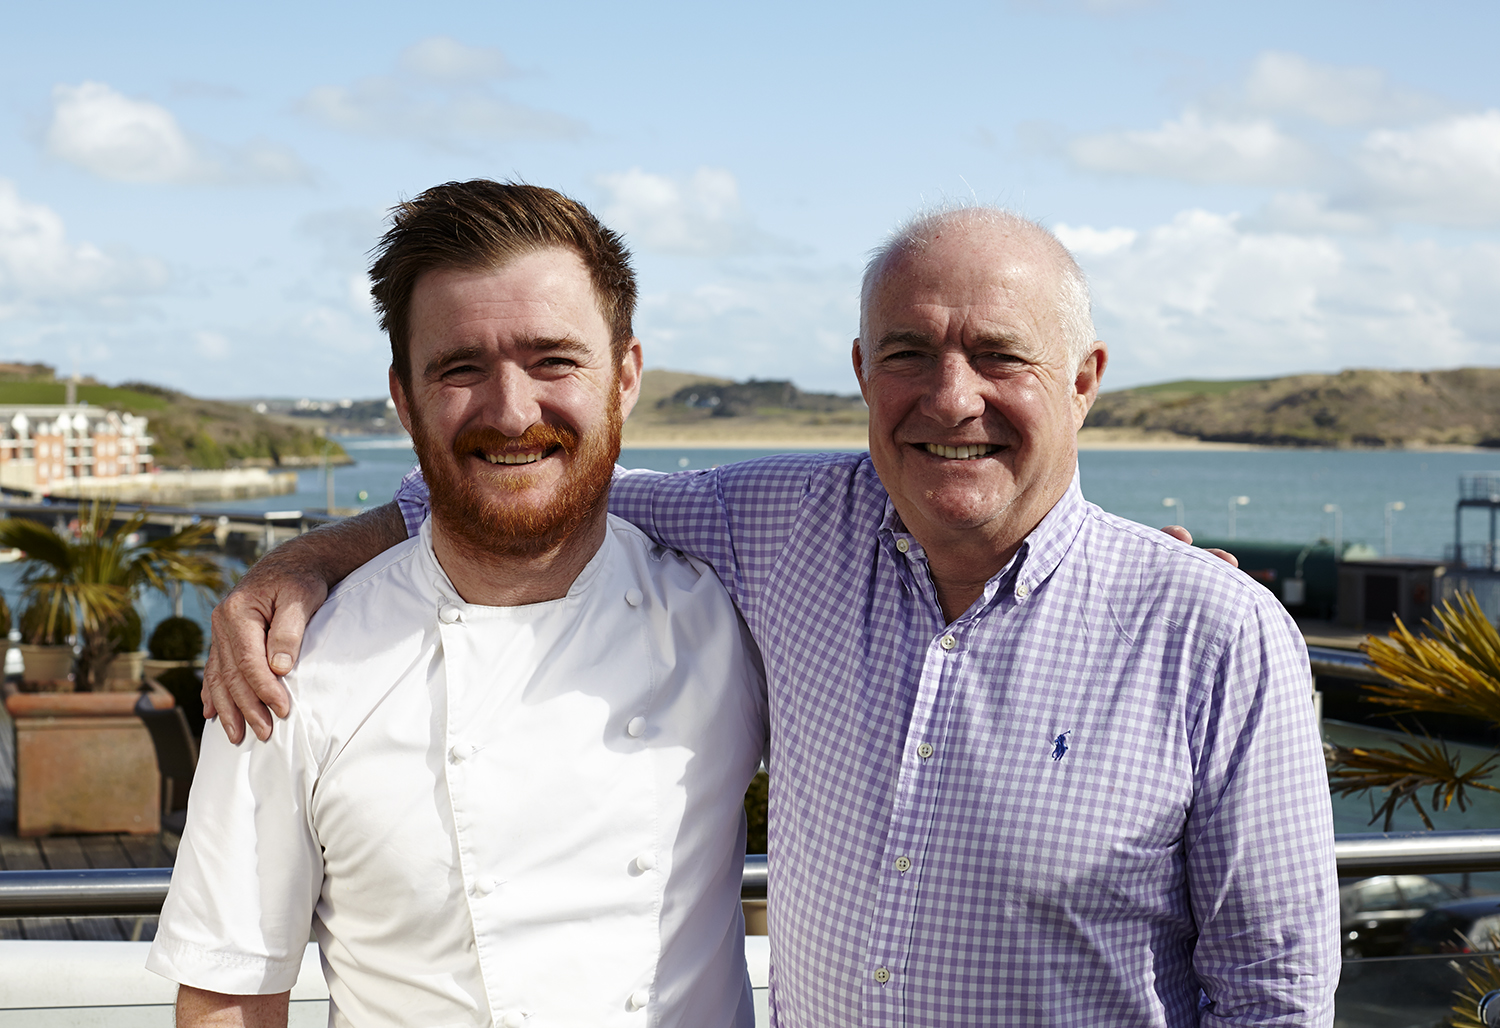 Rick Stein & The Seafood Restaurant 40th Anniversary feature in Delicious magazine 02